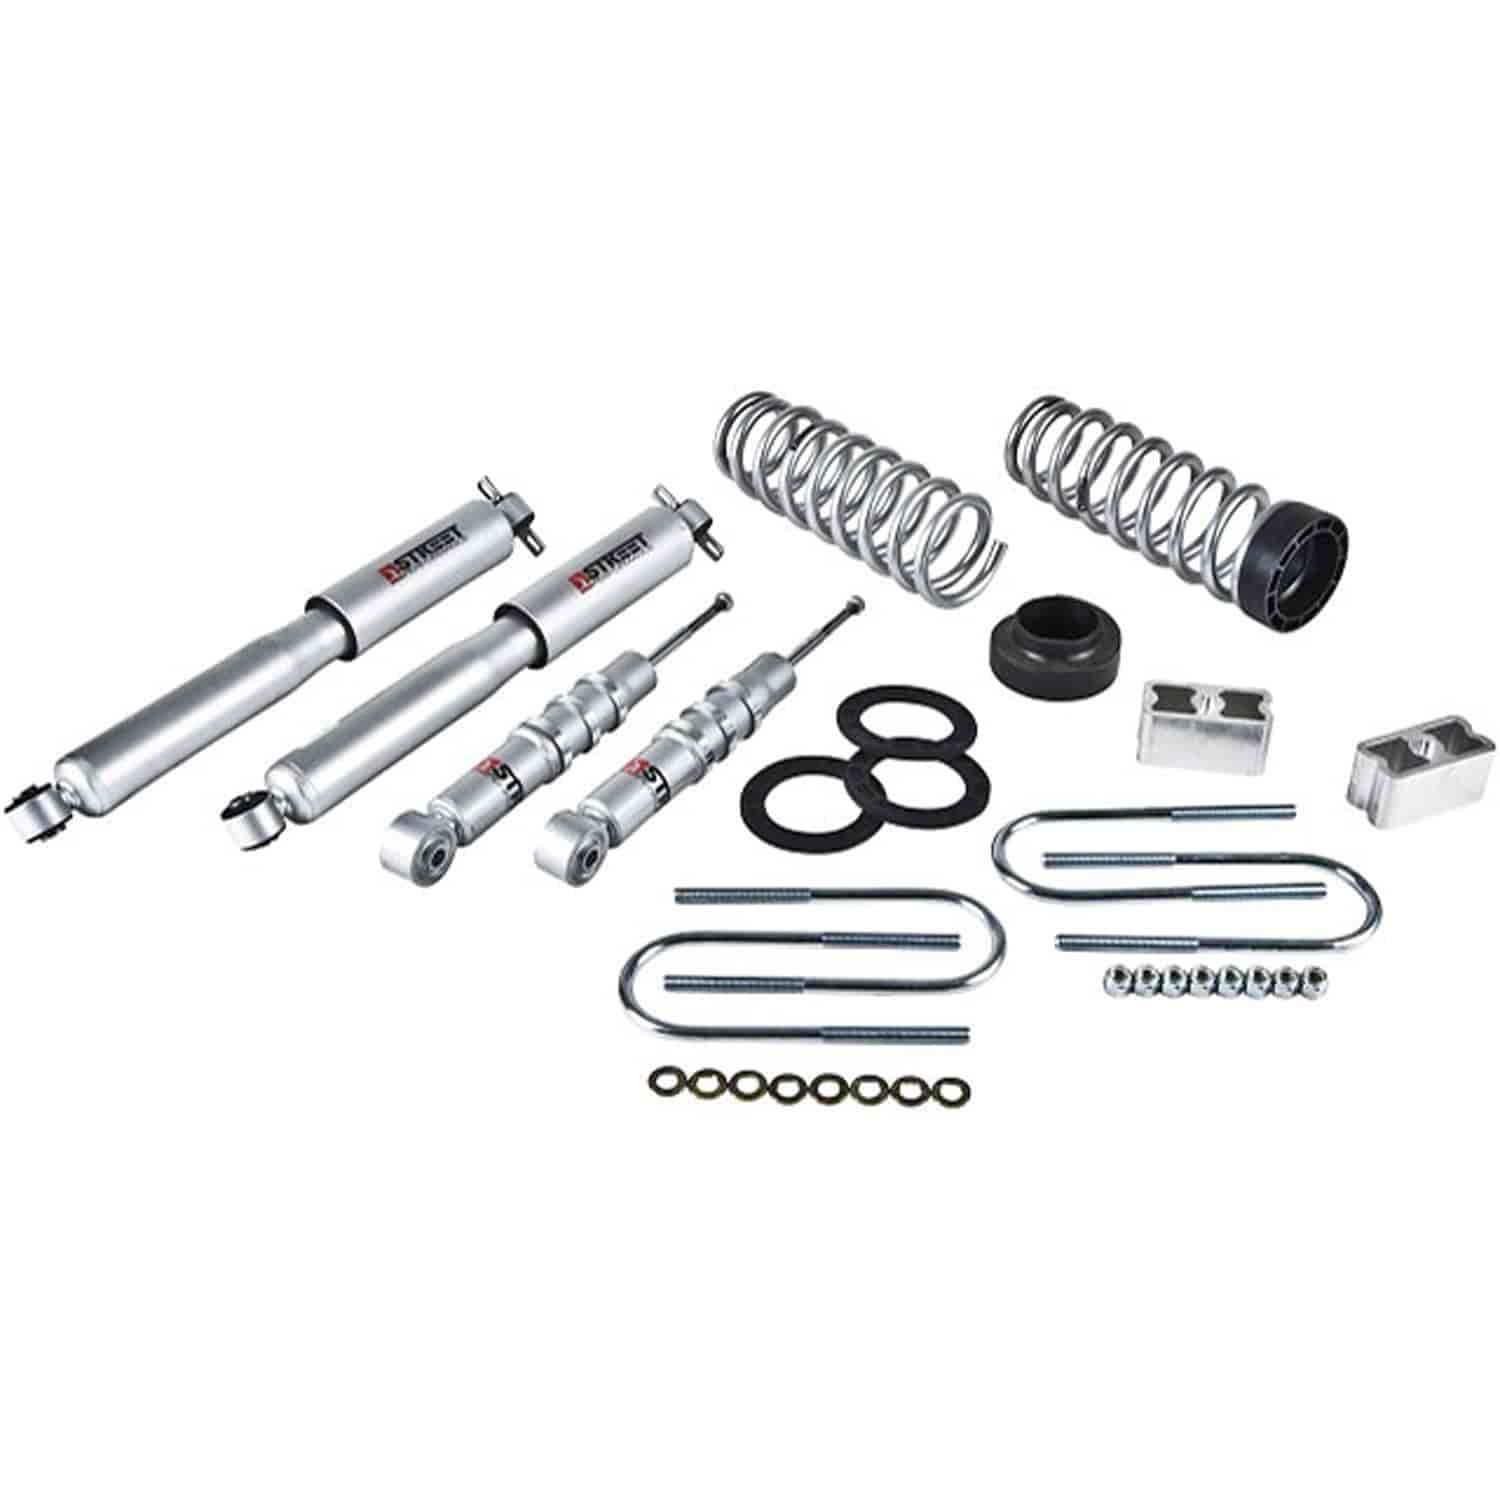 2012 Chevrolet Colorado Regular Cab Head Gasket: Belltech 607SP: Complete Lowering Kit For 2004-2012 Chevy